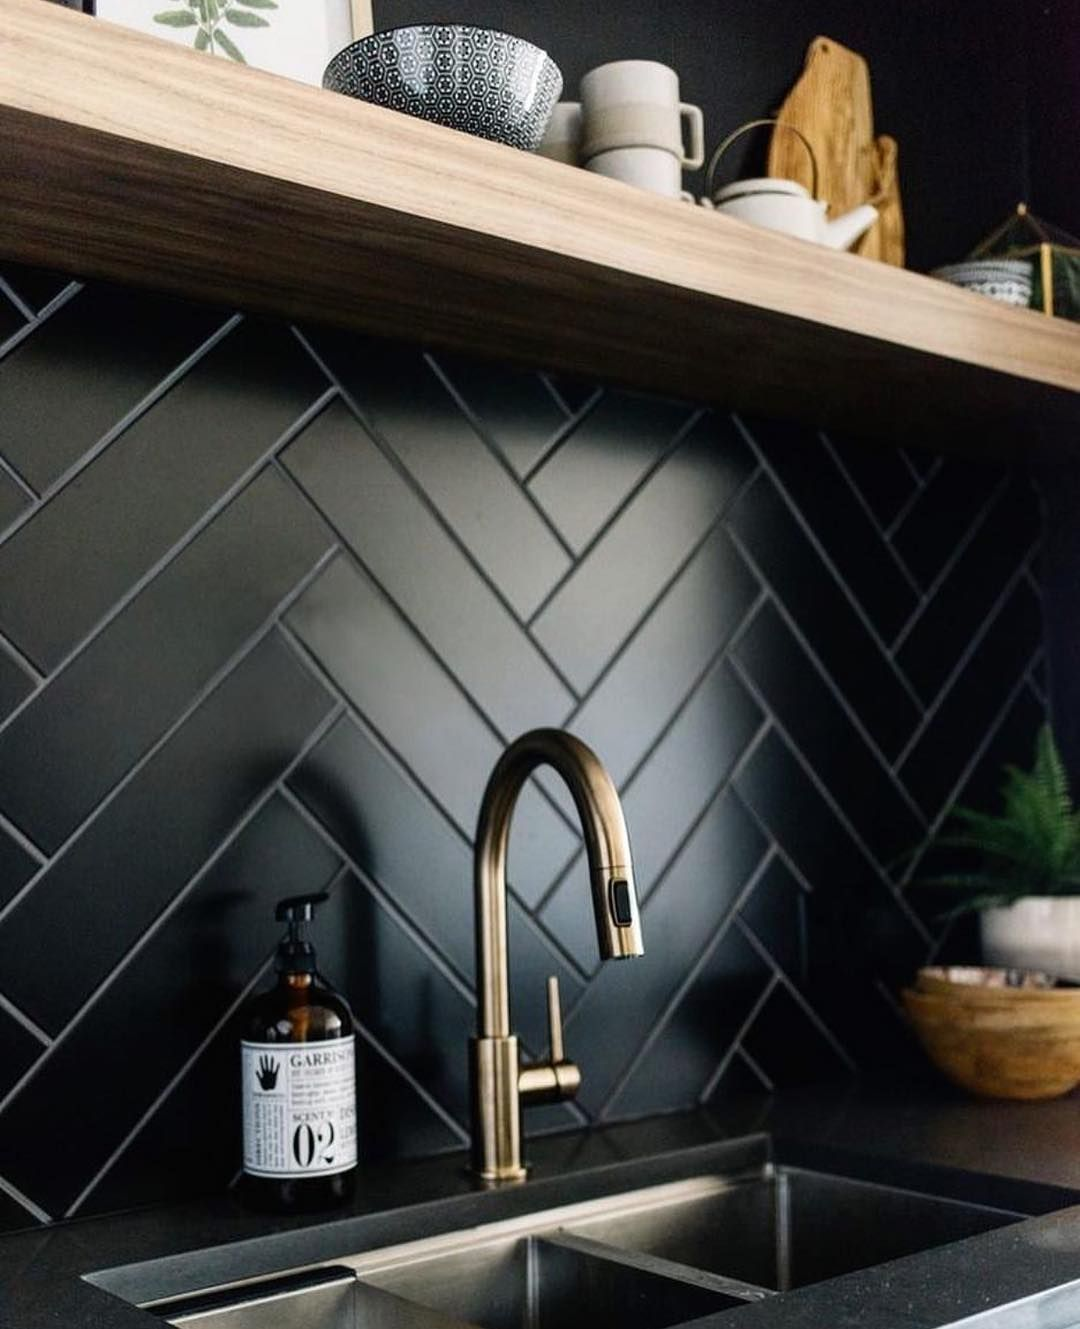 Pinterest Küchenrückwand Kitchens Of Instagram Kitchens Of Insta Loving This Black And